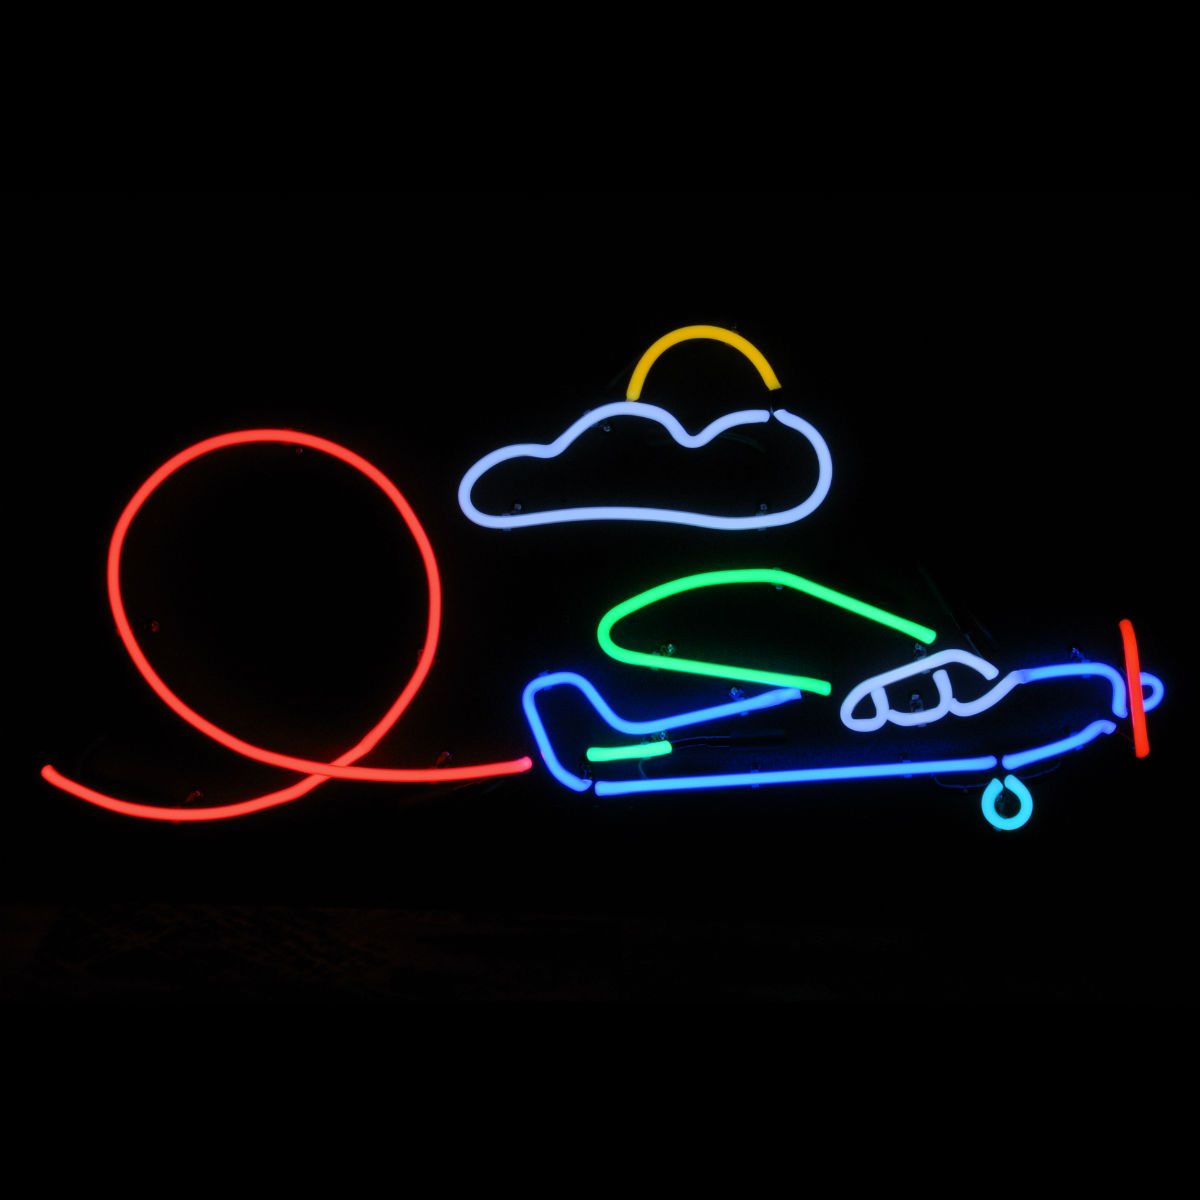 AIRPLANE NEON LIGHT ARTWORKS BY JOHN BARTON - BartonNeonMagic.com